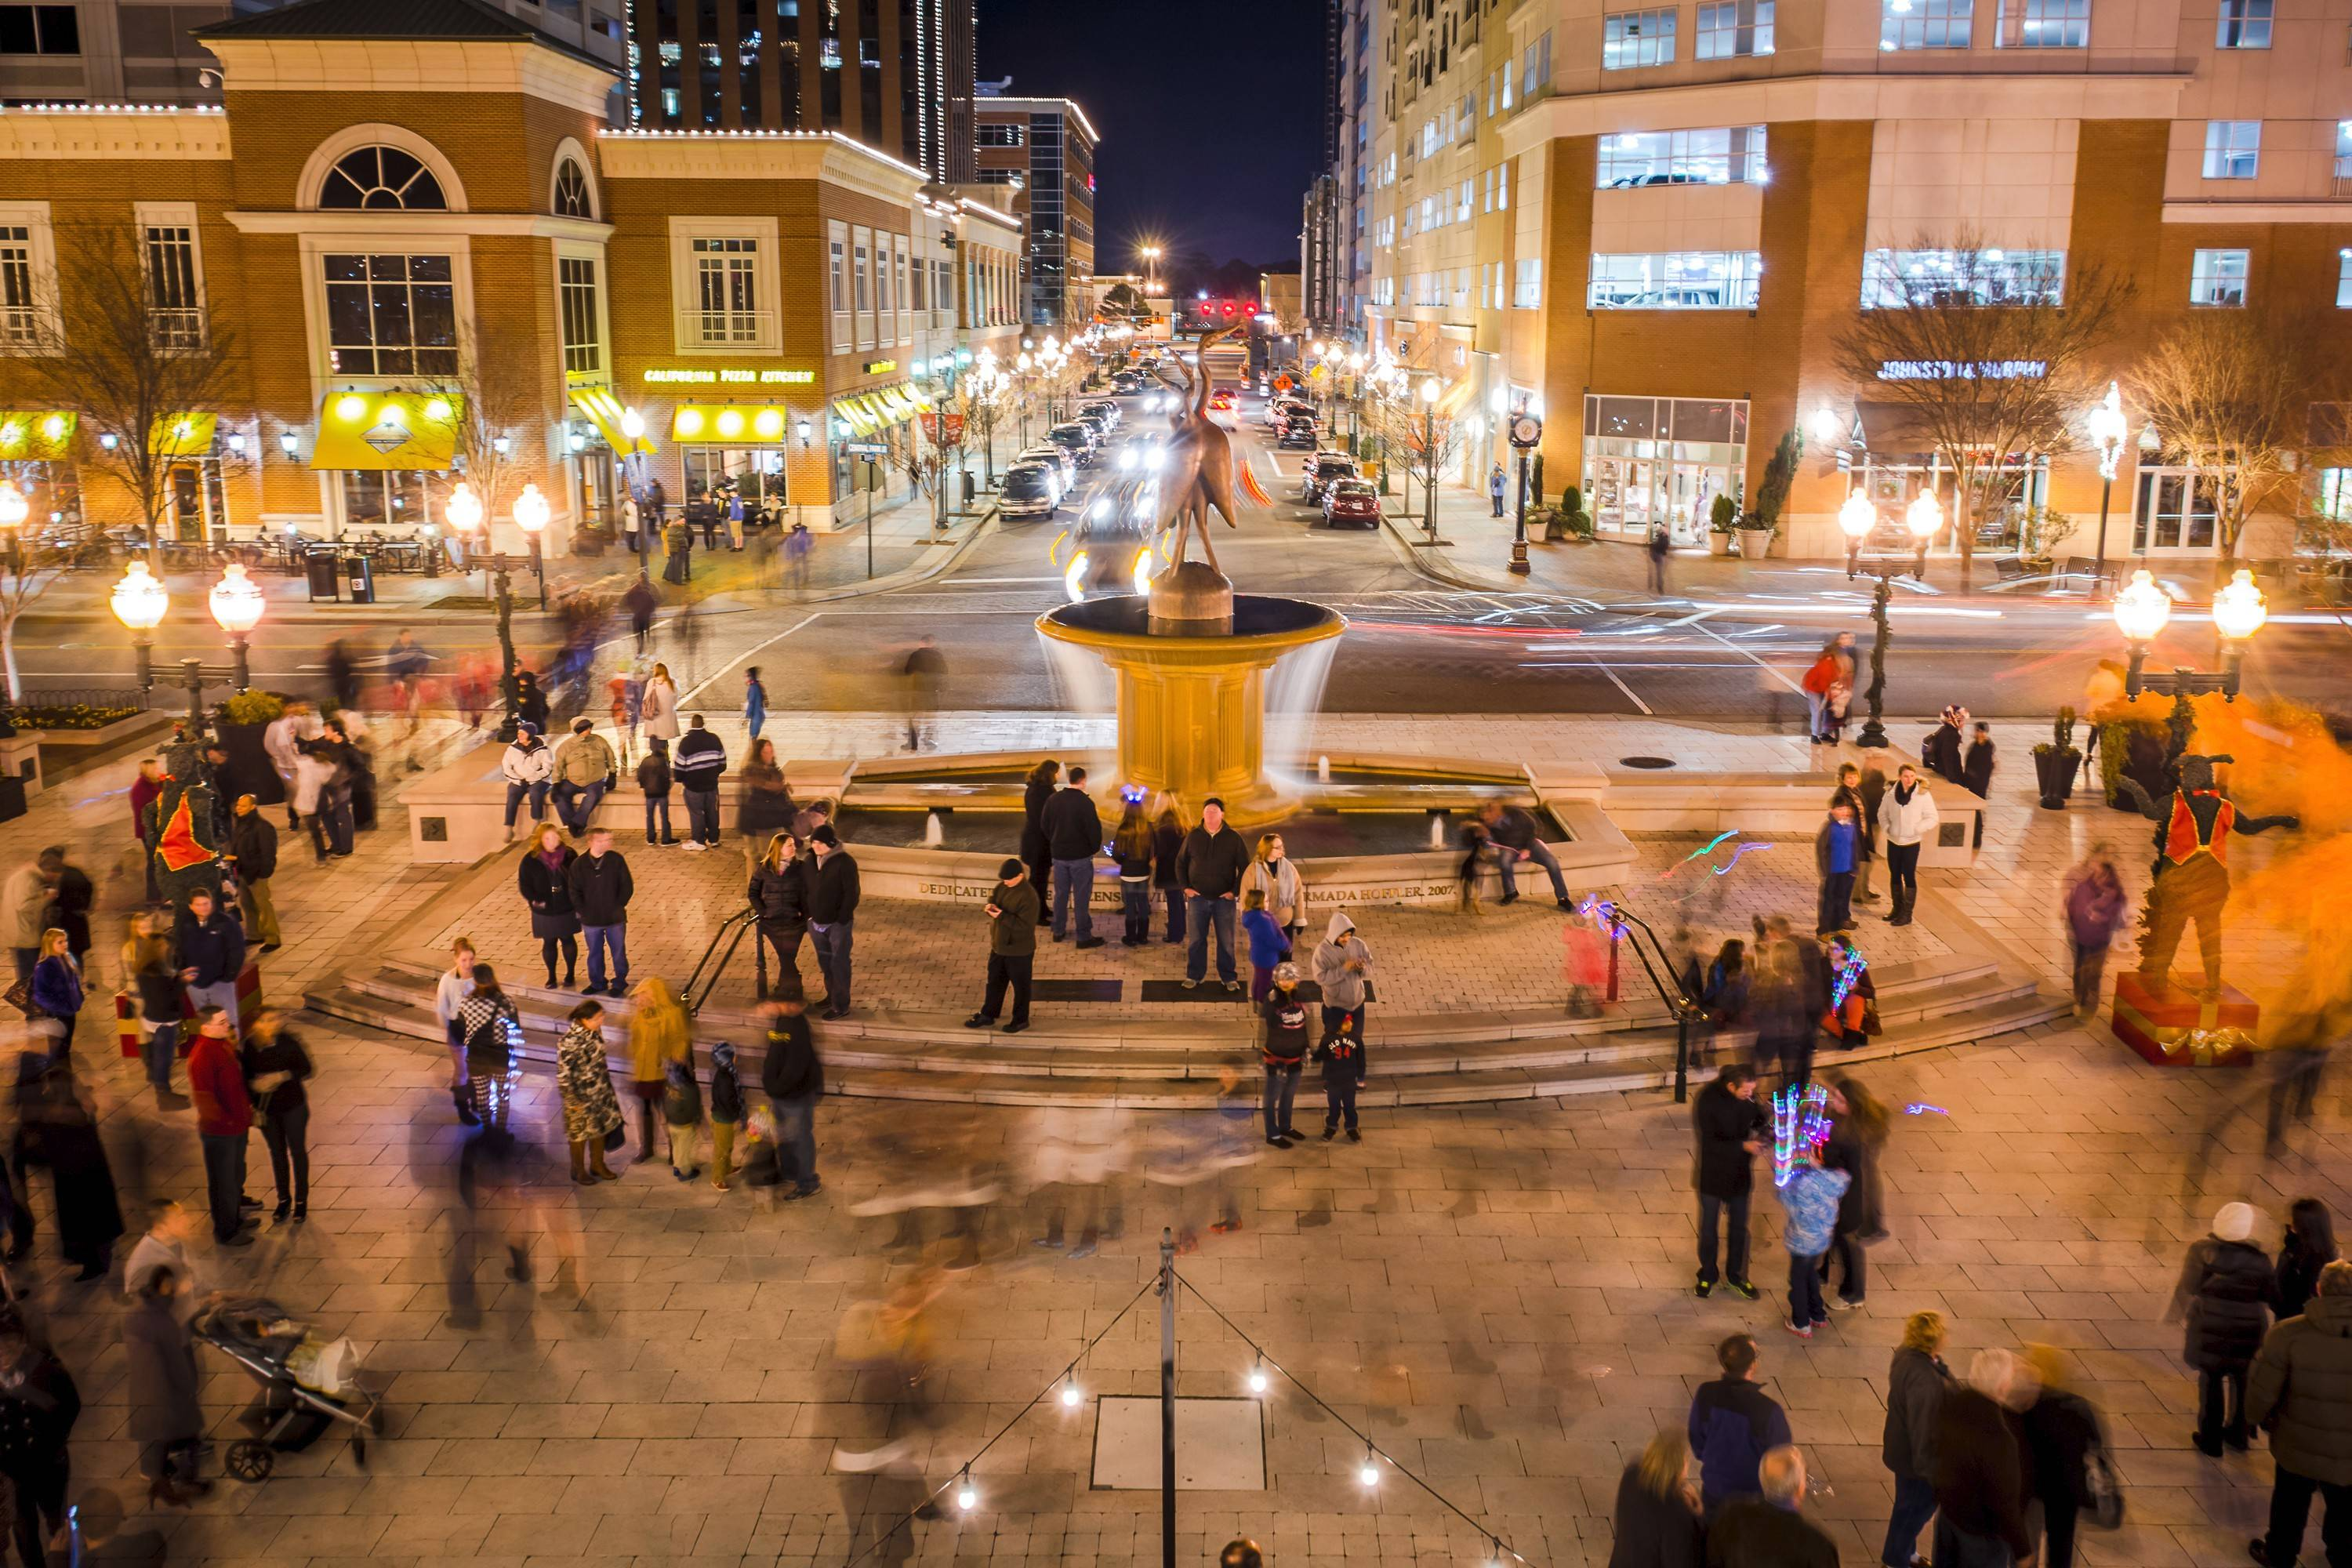 People enjoy Town Center at night in Virginia Beach.